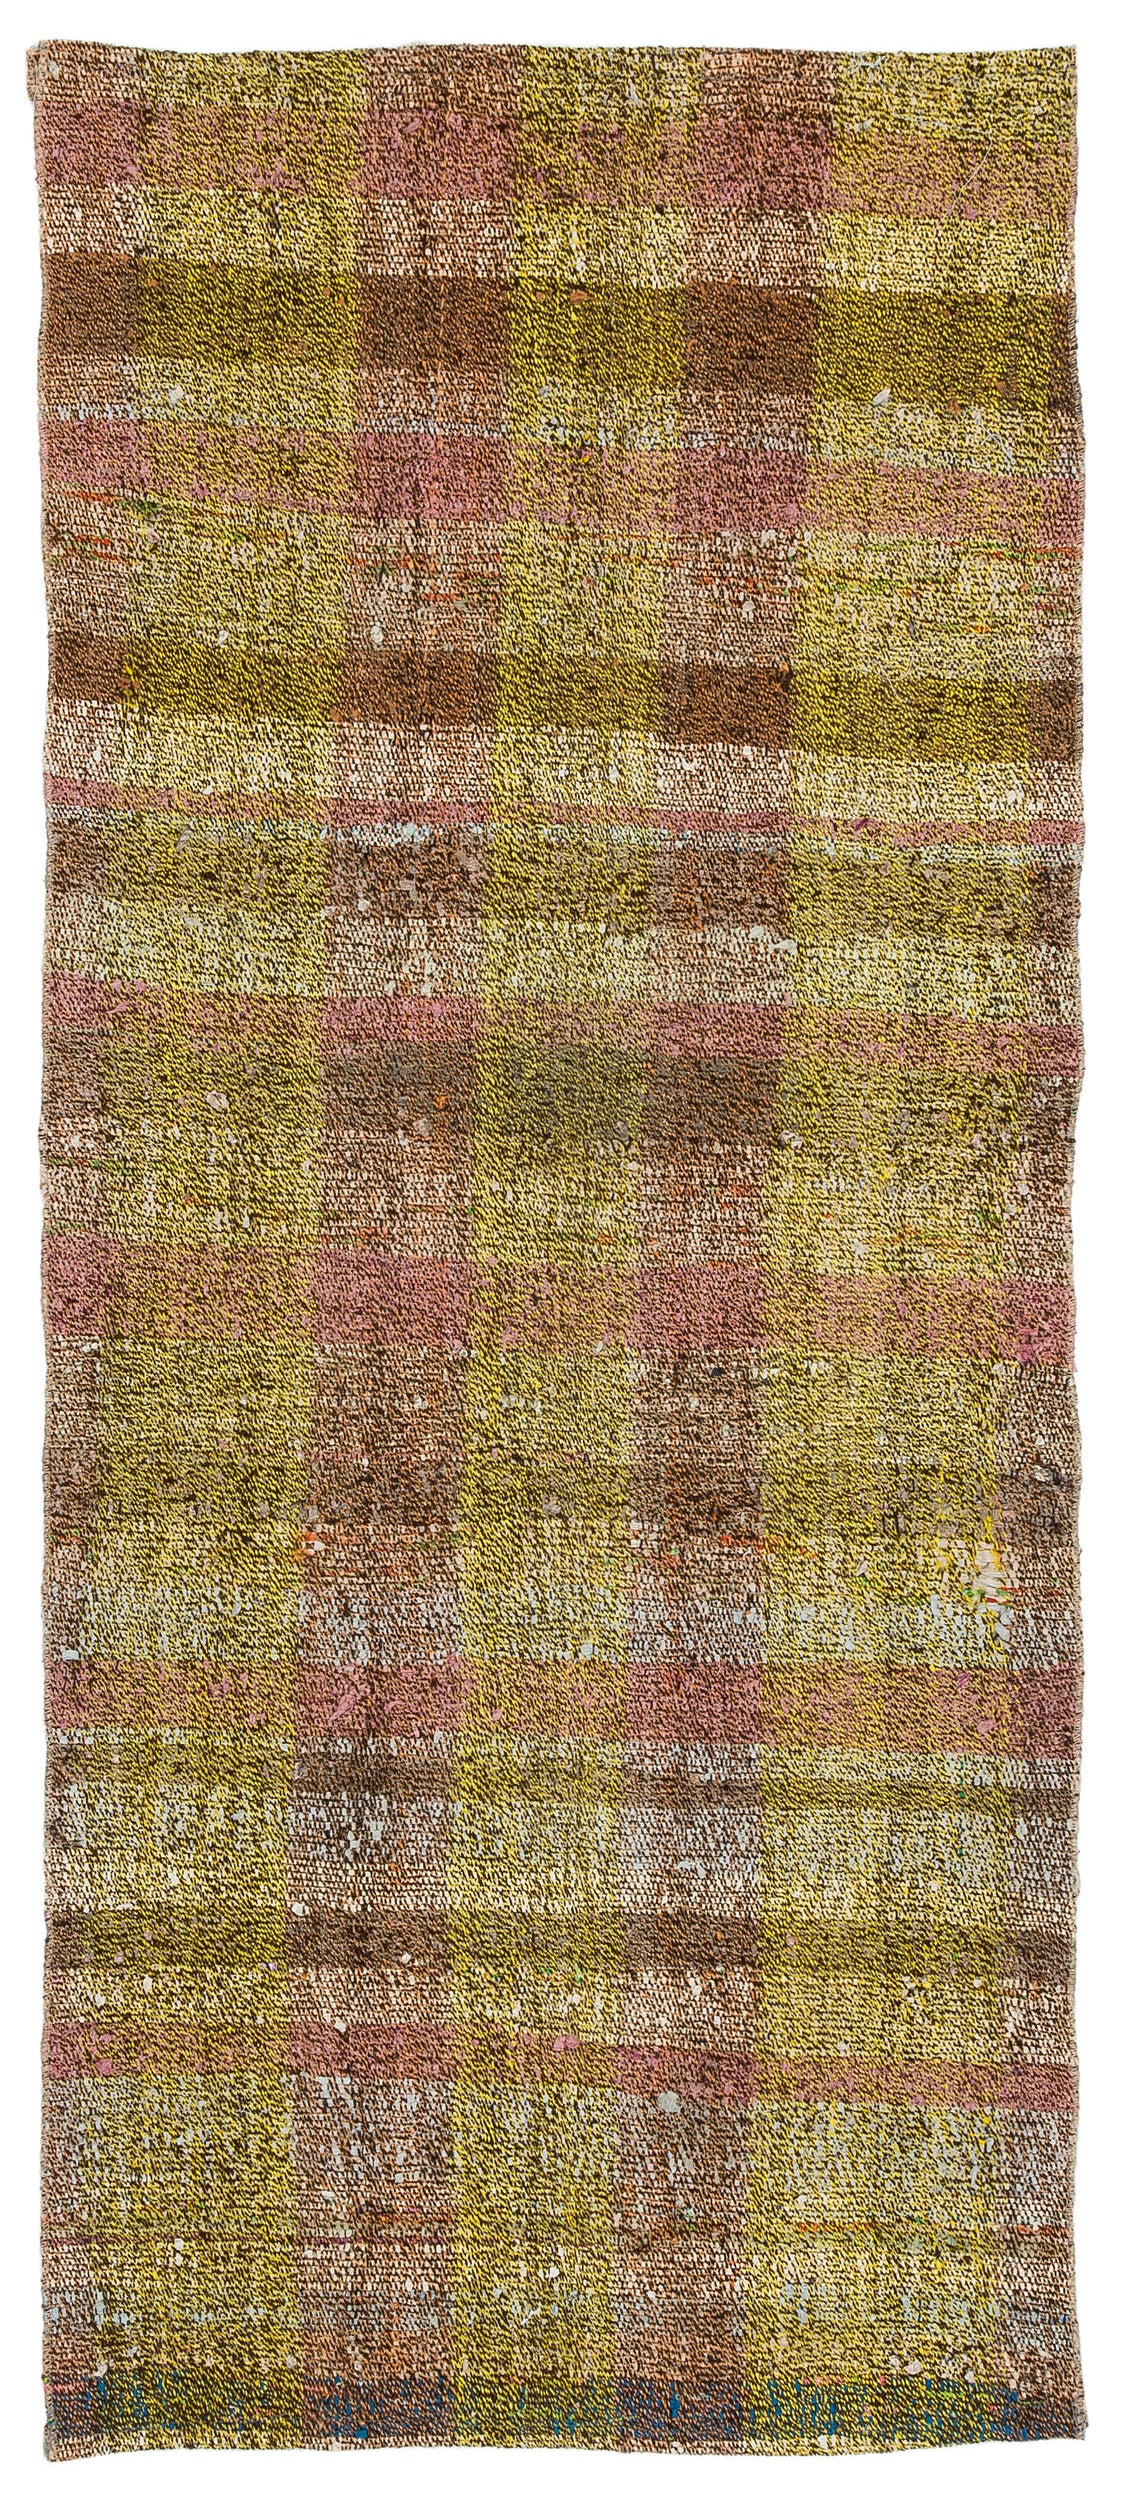 Chaput Over Dyed Kilim Rug 2'7'' x 5'12'' ft 79 x 182 cm